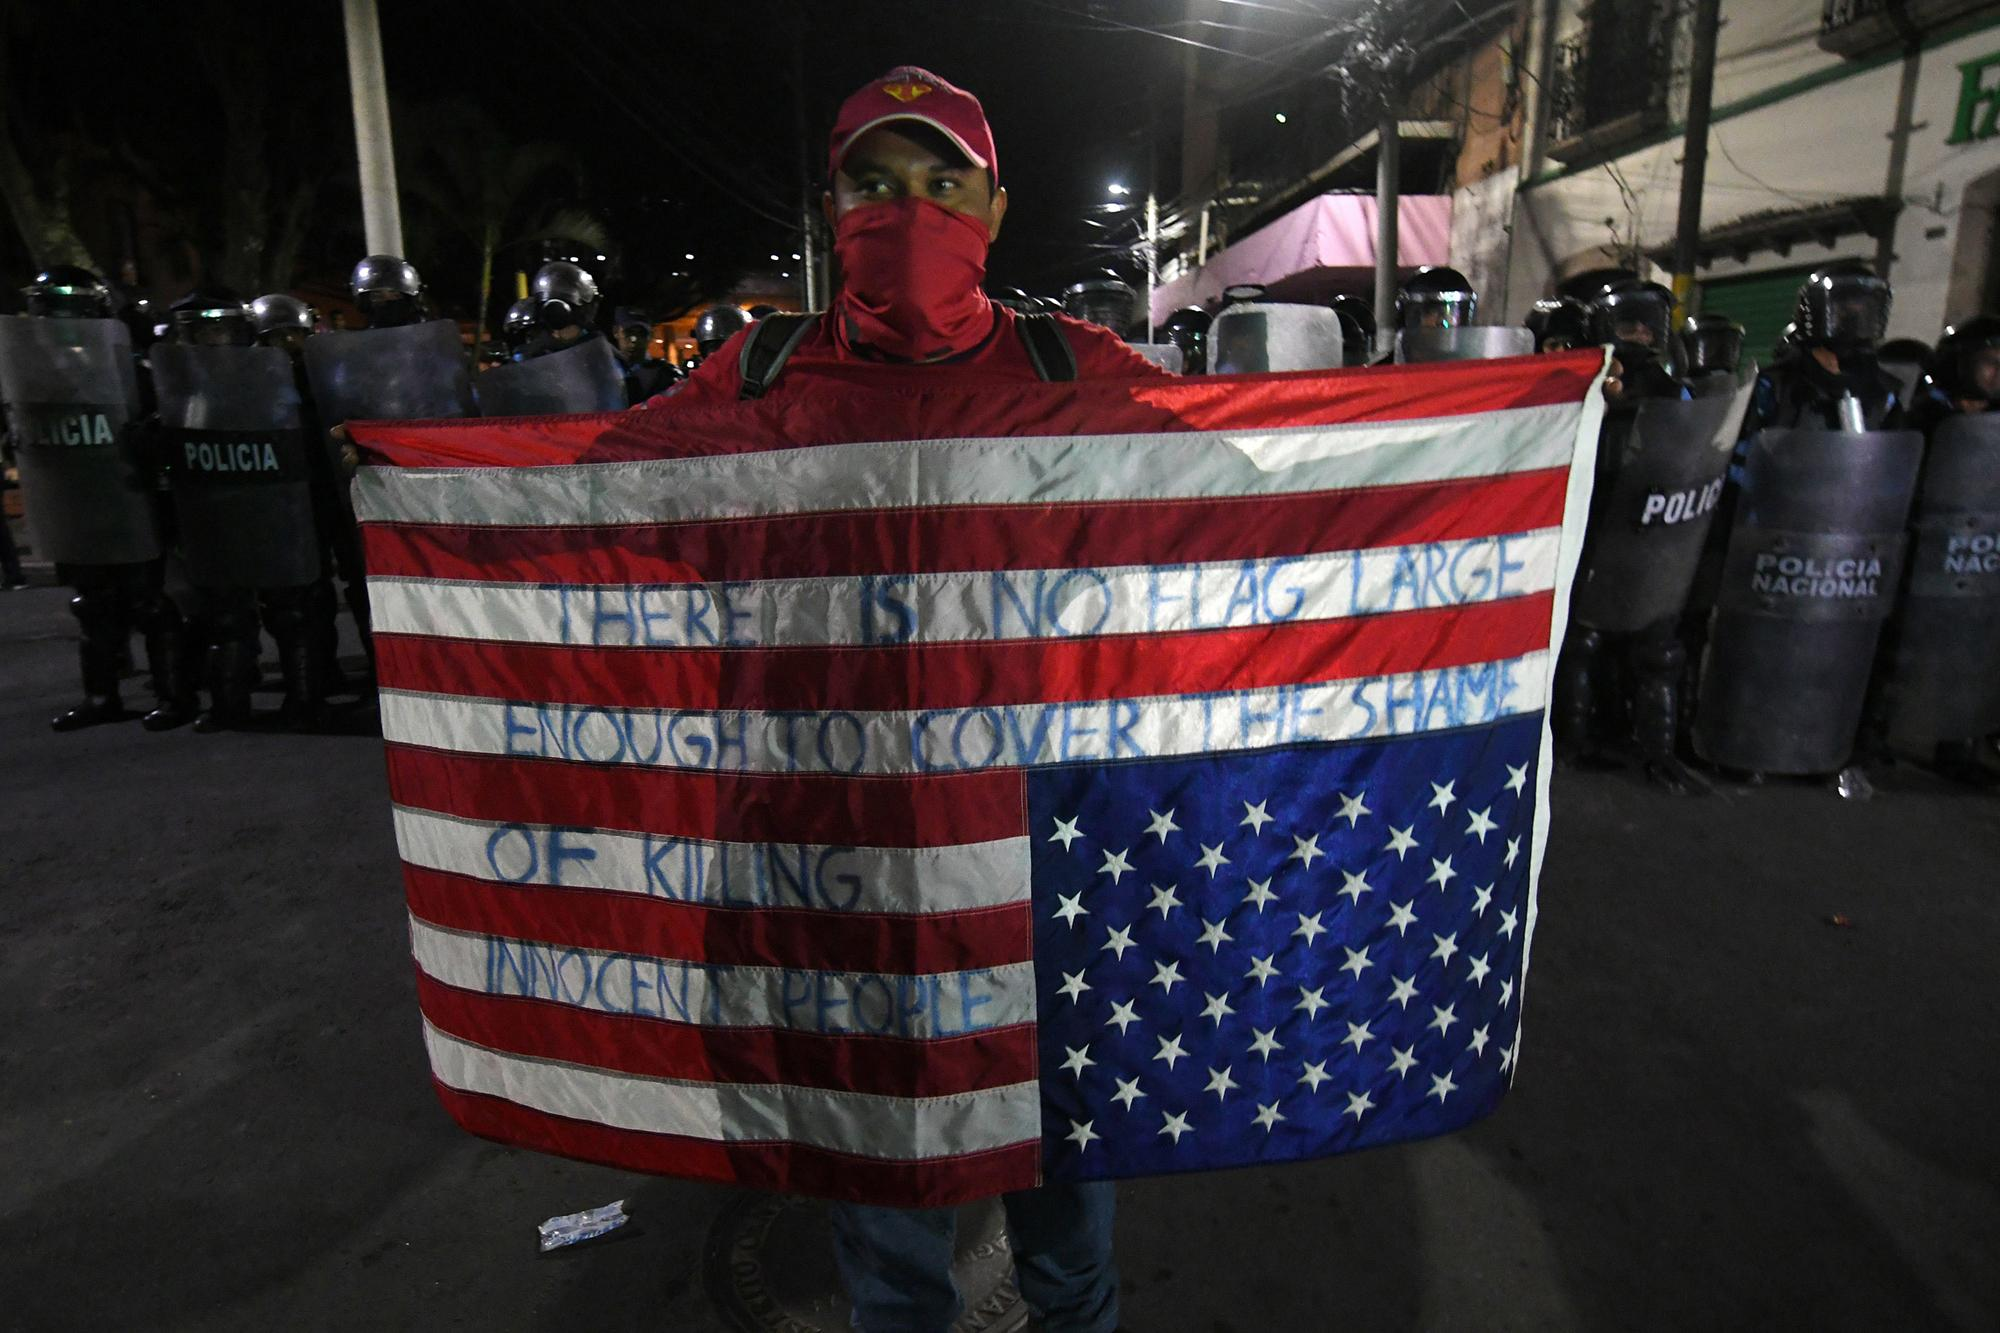 An opposition supporter holds a US flag upside down in front of a line of riot police during a protest demanding the resignation of Honduran President Juan Orlando Hernandez for his alleged links to drug trafficking in the surroundings of the Congress building in Tegucigalpa on October 9, 2019. - Opposition legislators tried to start an impeachment to President Hernandez Tuesday night at the Congress accusing him of drug trafficking, a measure with few possibilities of success in a parliament with a majority of pro-government legislators. A US prosecutor had said on October 2 at the opening of the trial of the Honduran president's brother Tony, that the president himself took fortunes in drug bribes. (Photo by ORLANDO SIERRA / AFP)